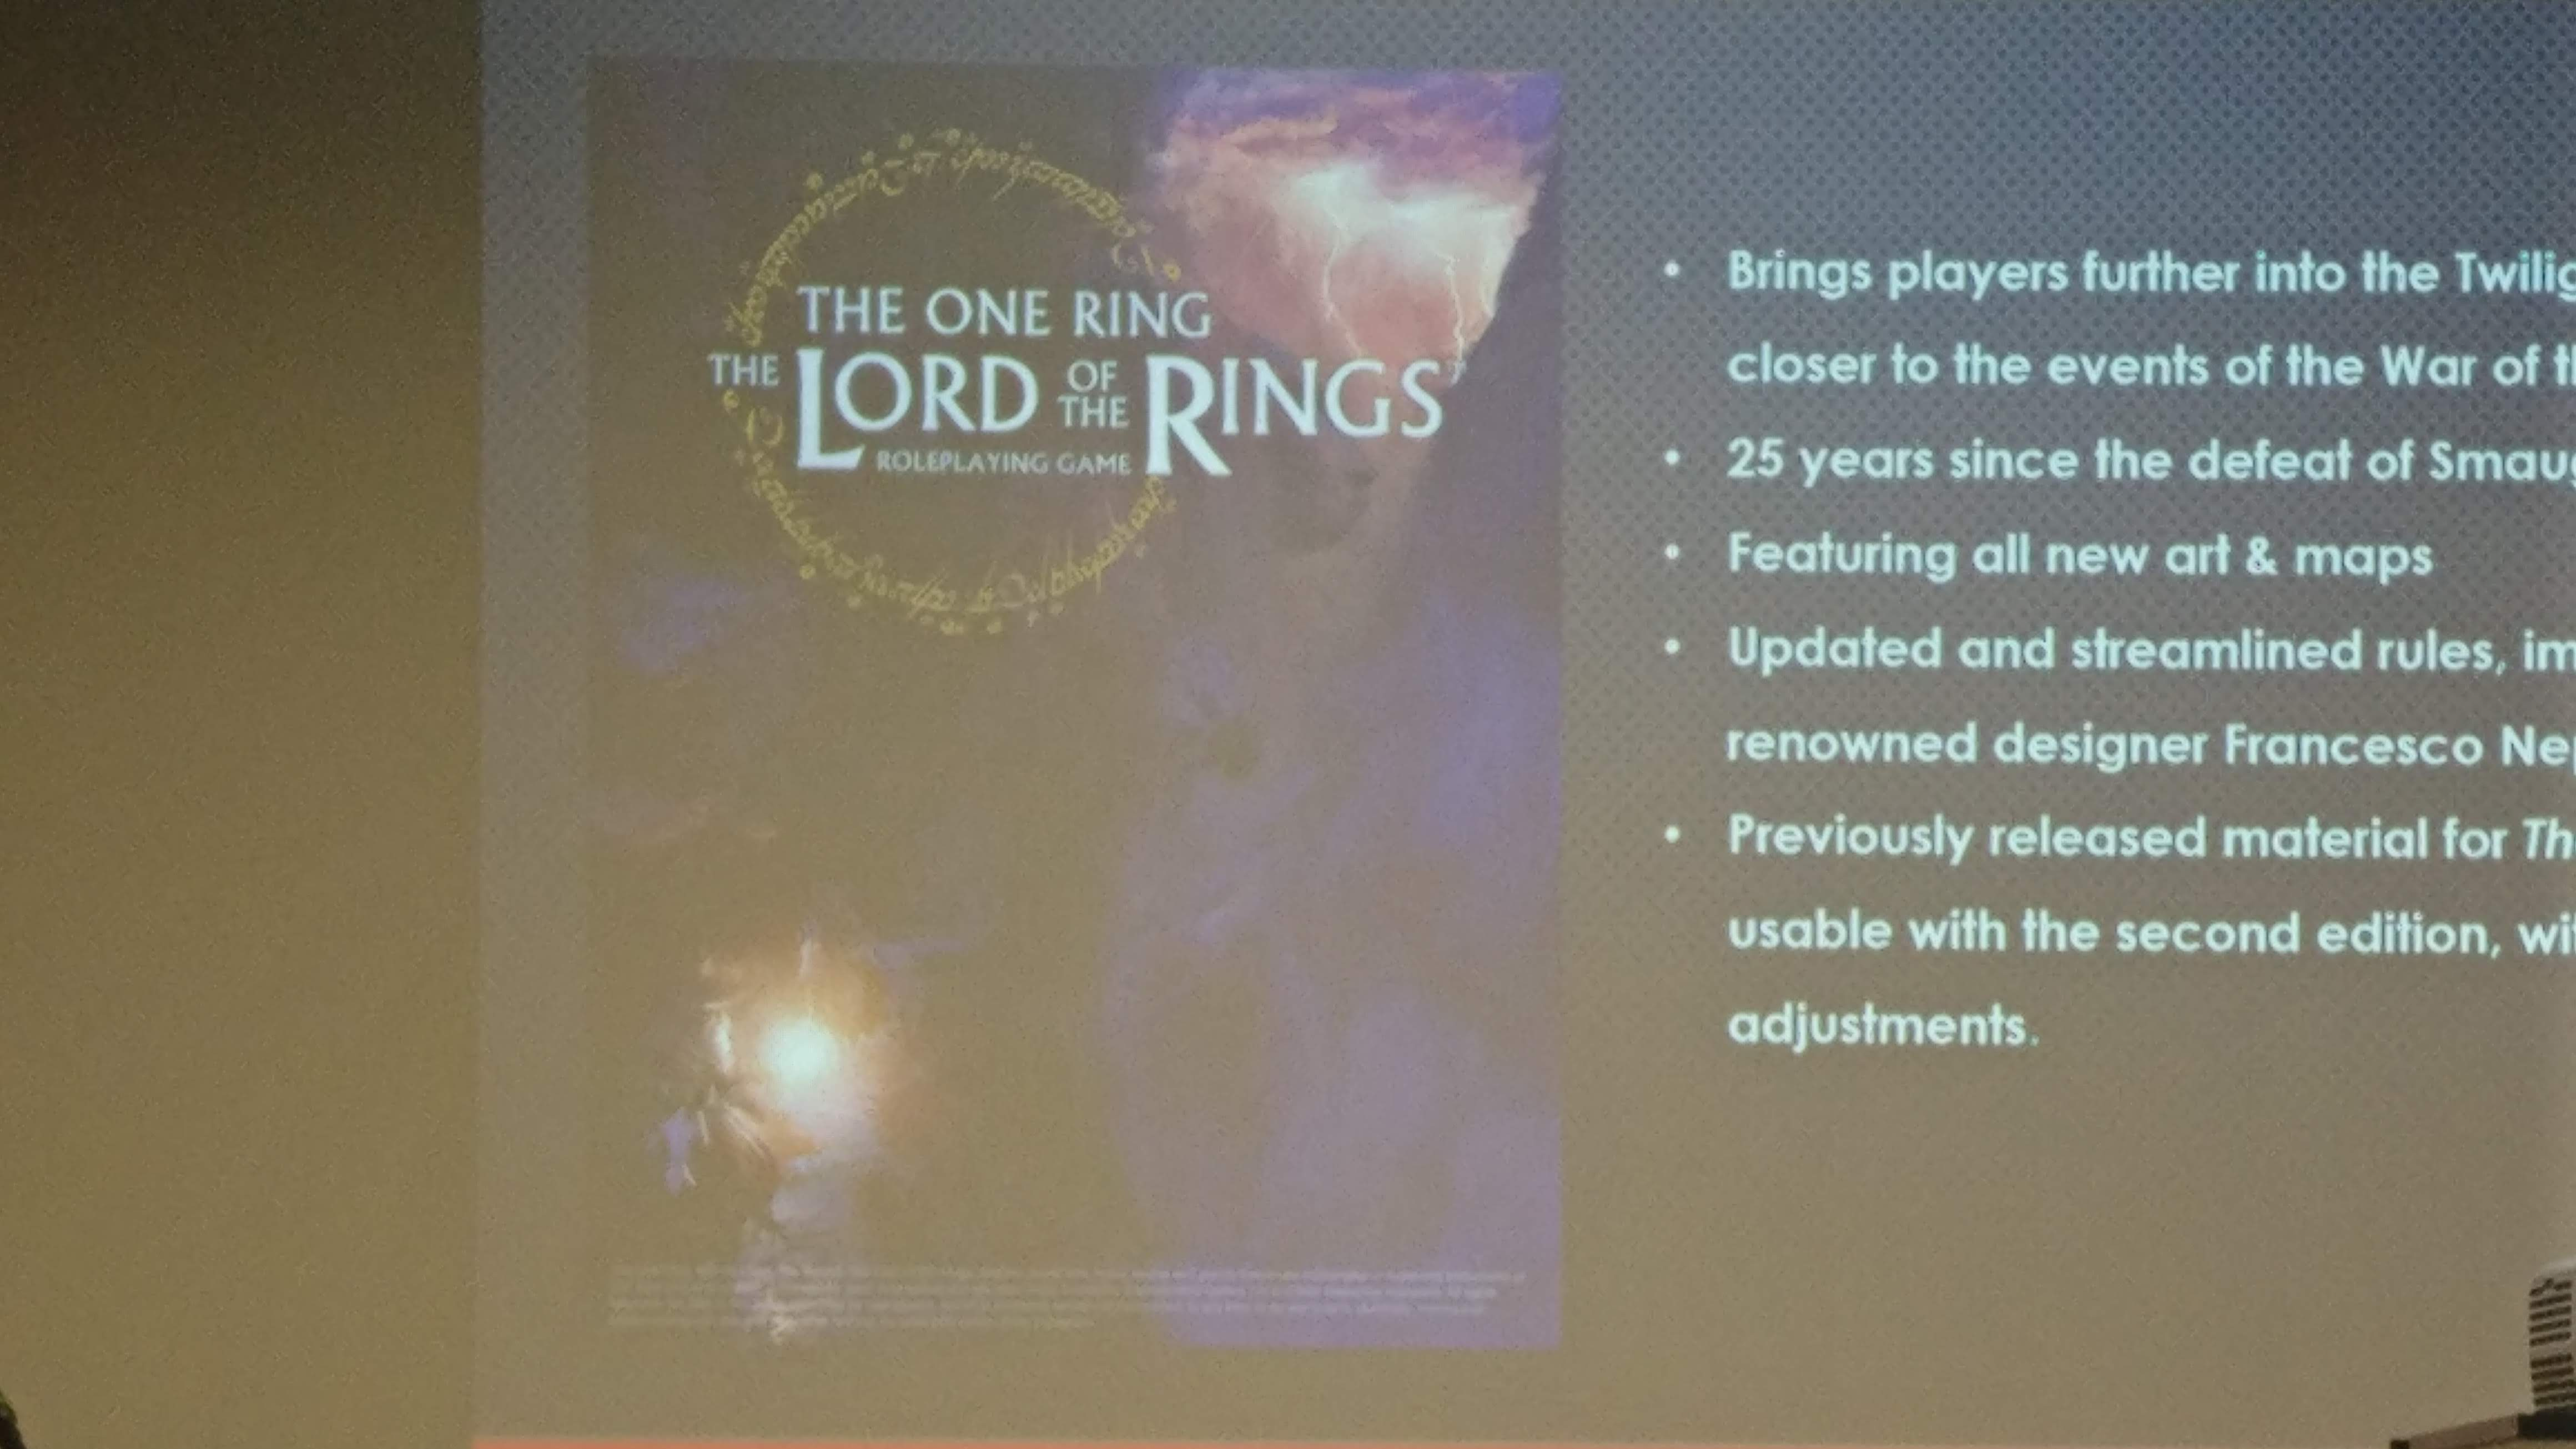 Lord of the Rings 2e cover reveal